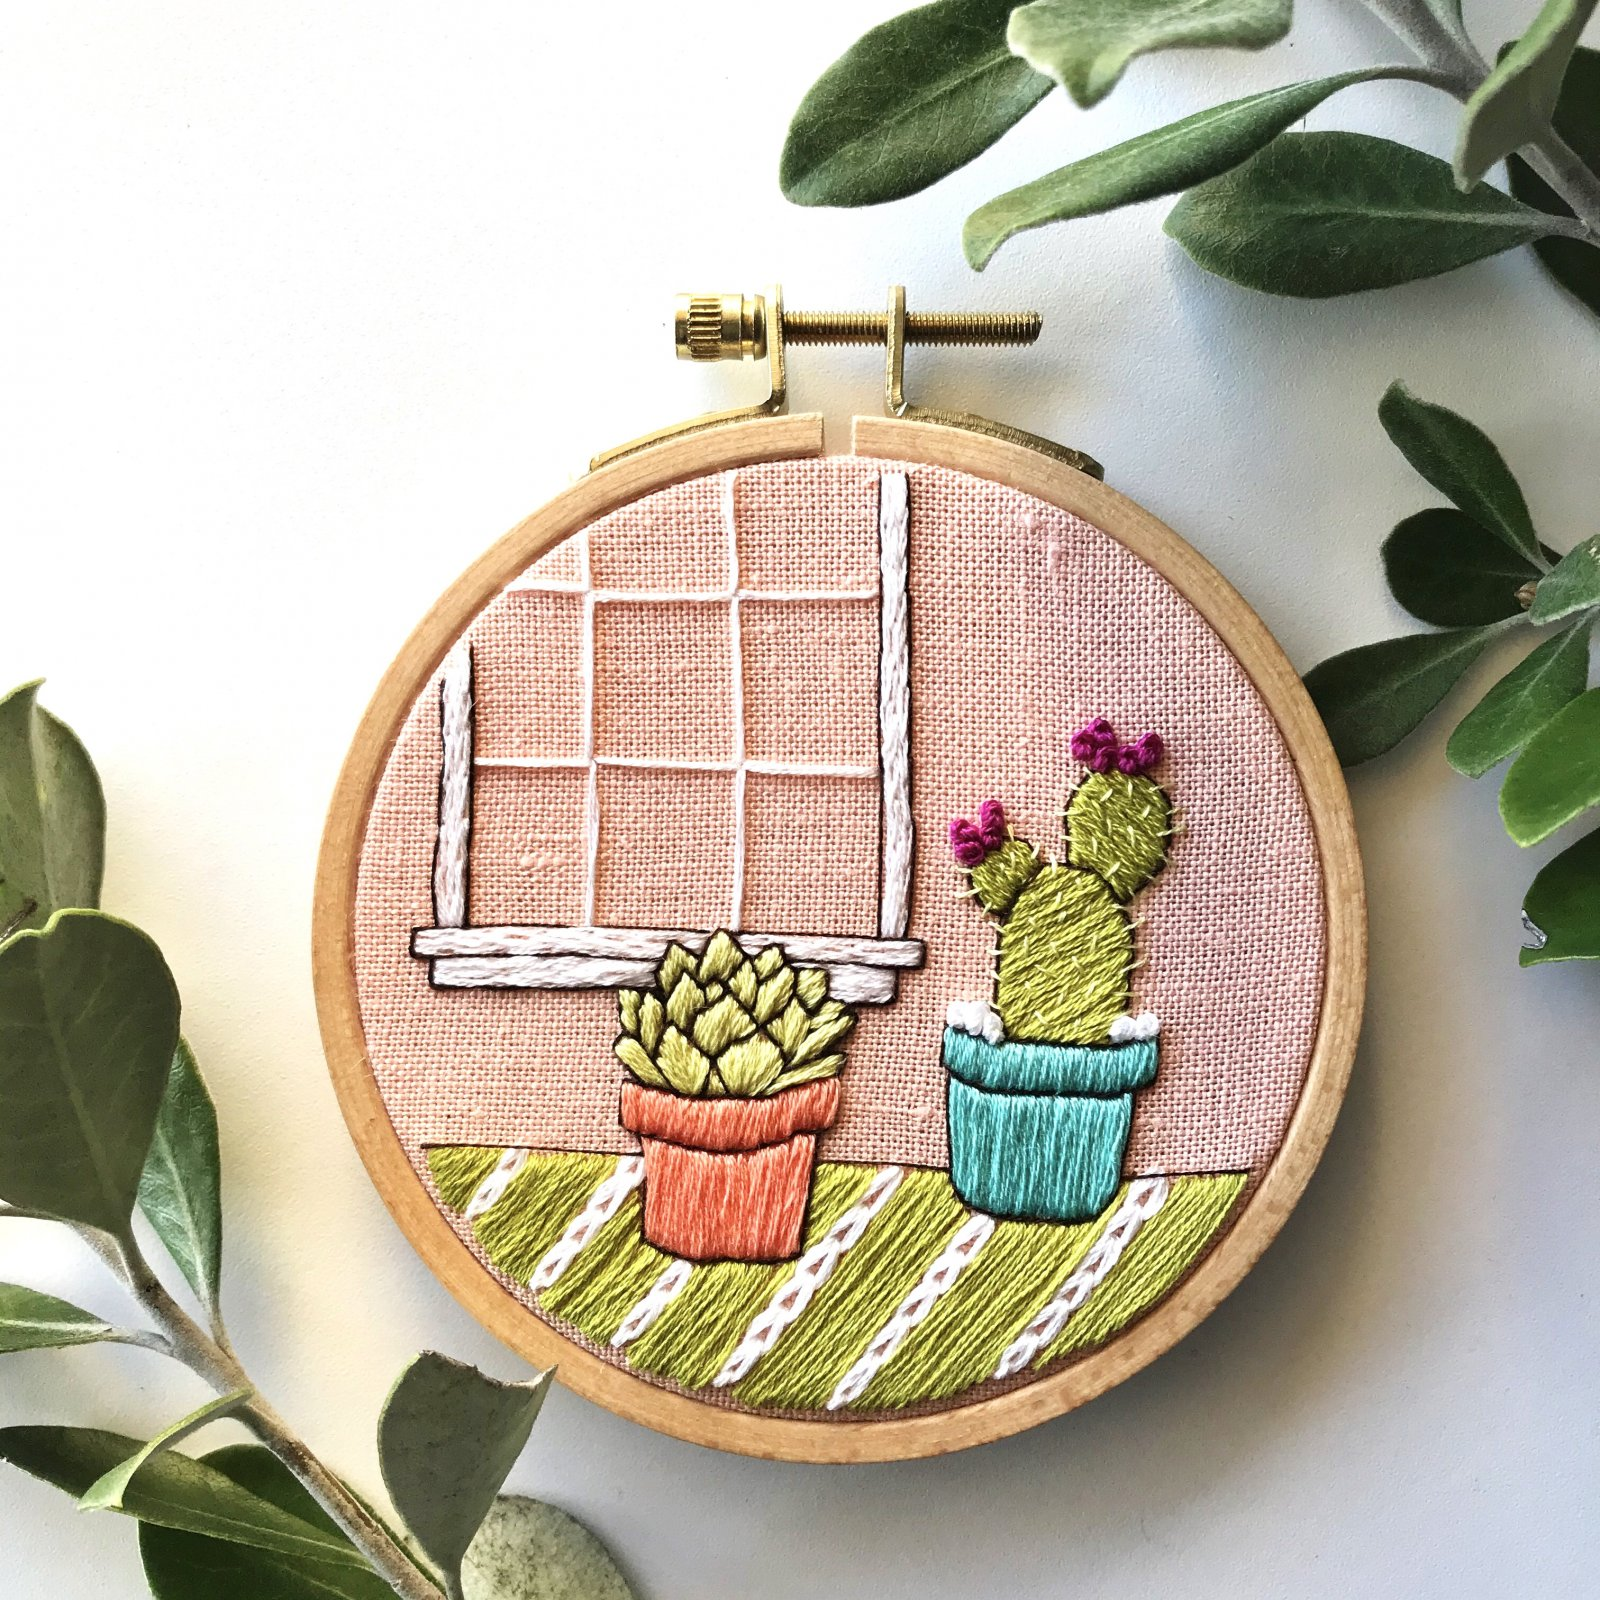 DIY Cactus Embroidery Kit